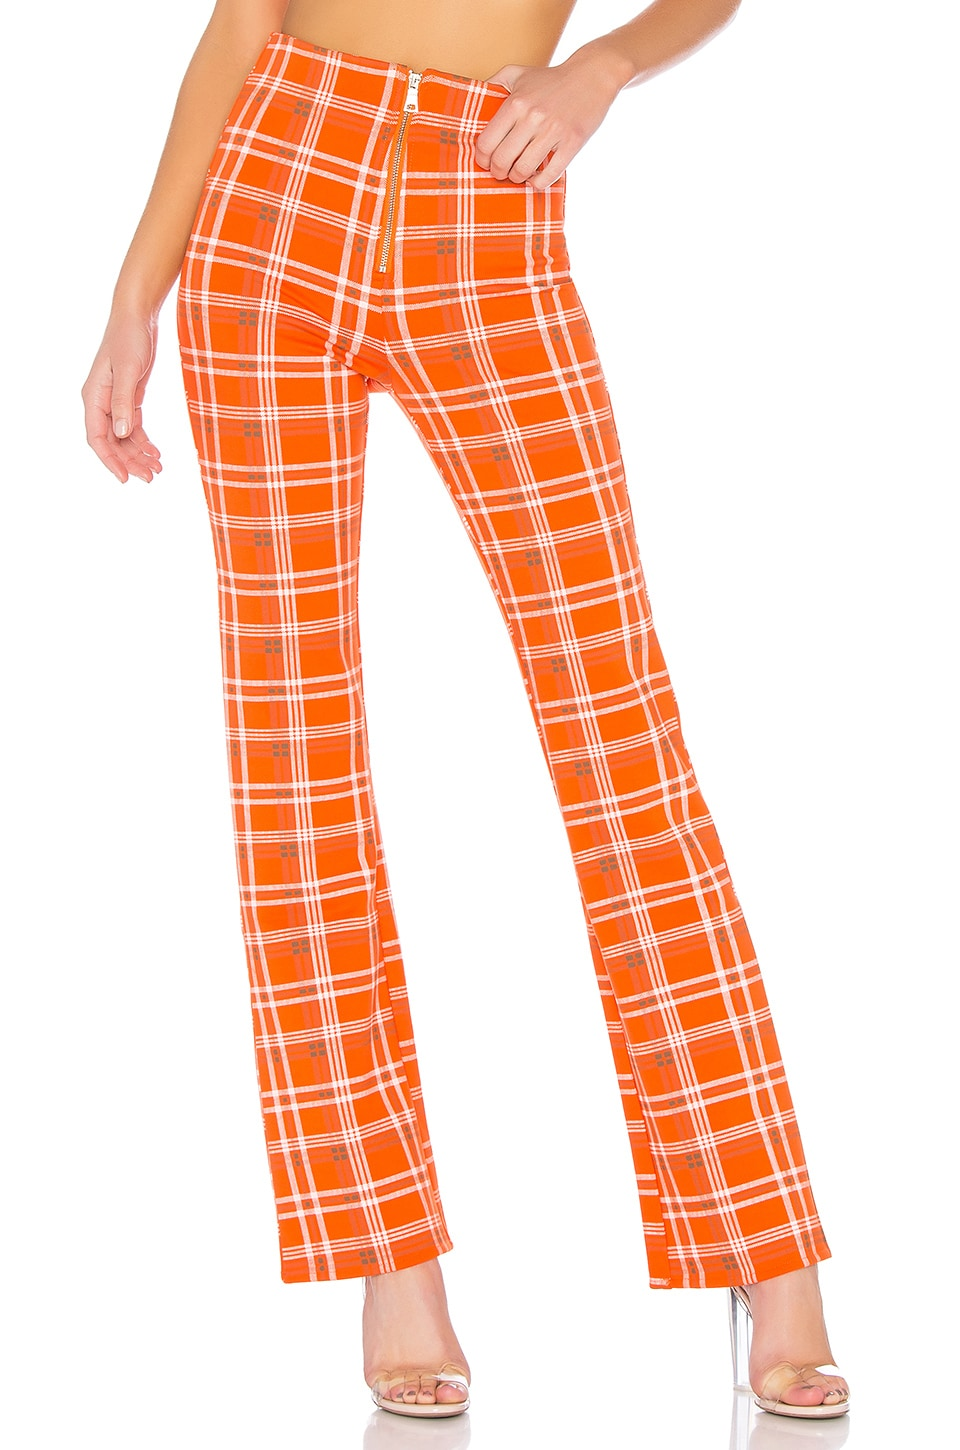 I.AM.GIA Polaris Pant in Orange